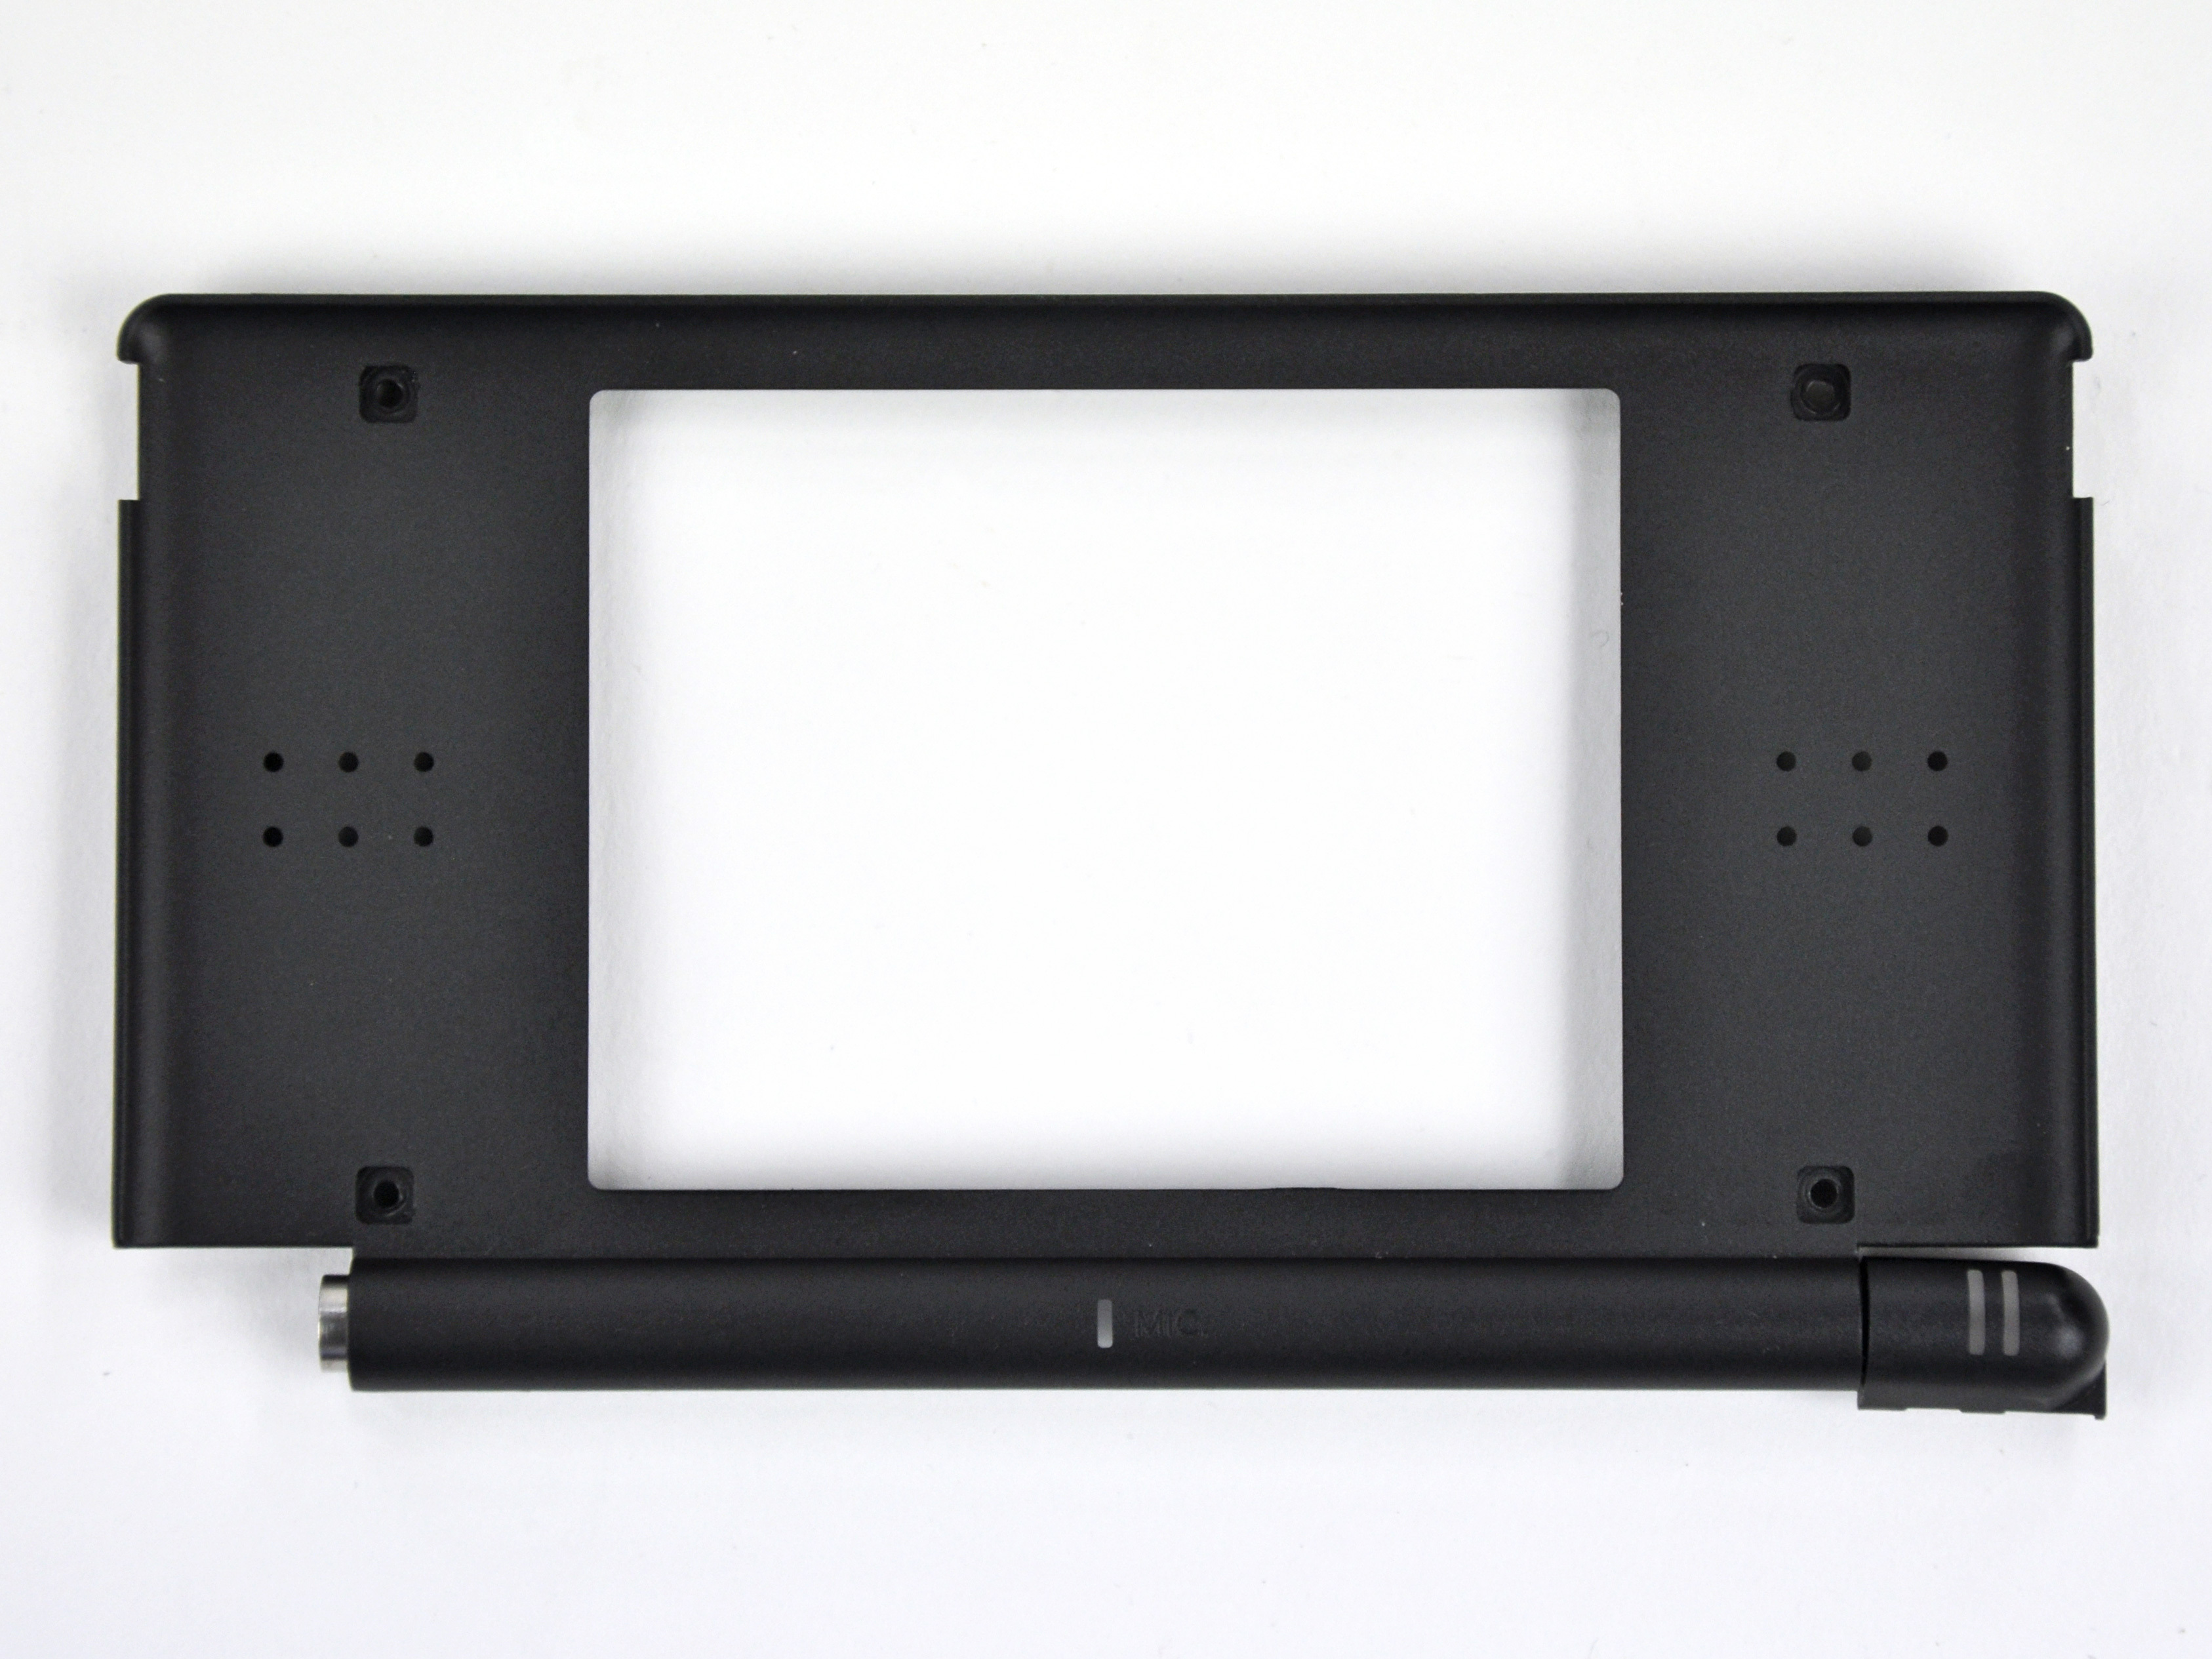 nintendo ds lite front display bezel replacement ifixit repair guide. Black Bedroom Furniture Sets. Home Design Ideas